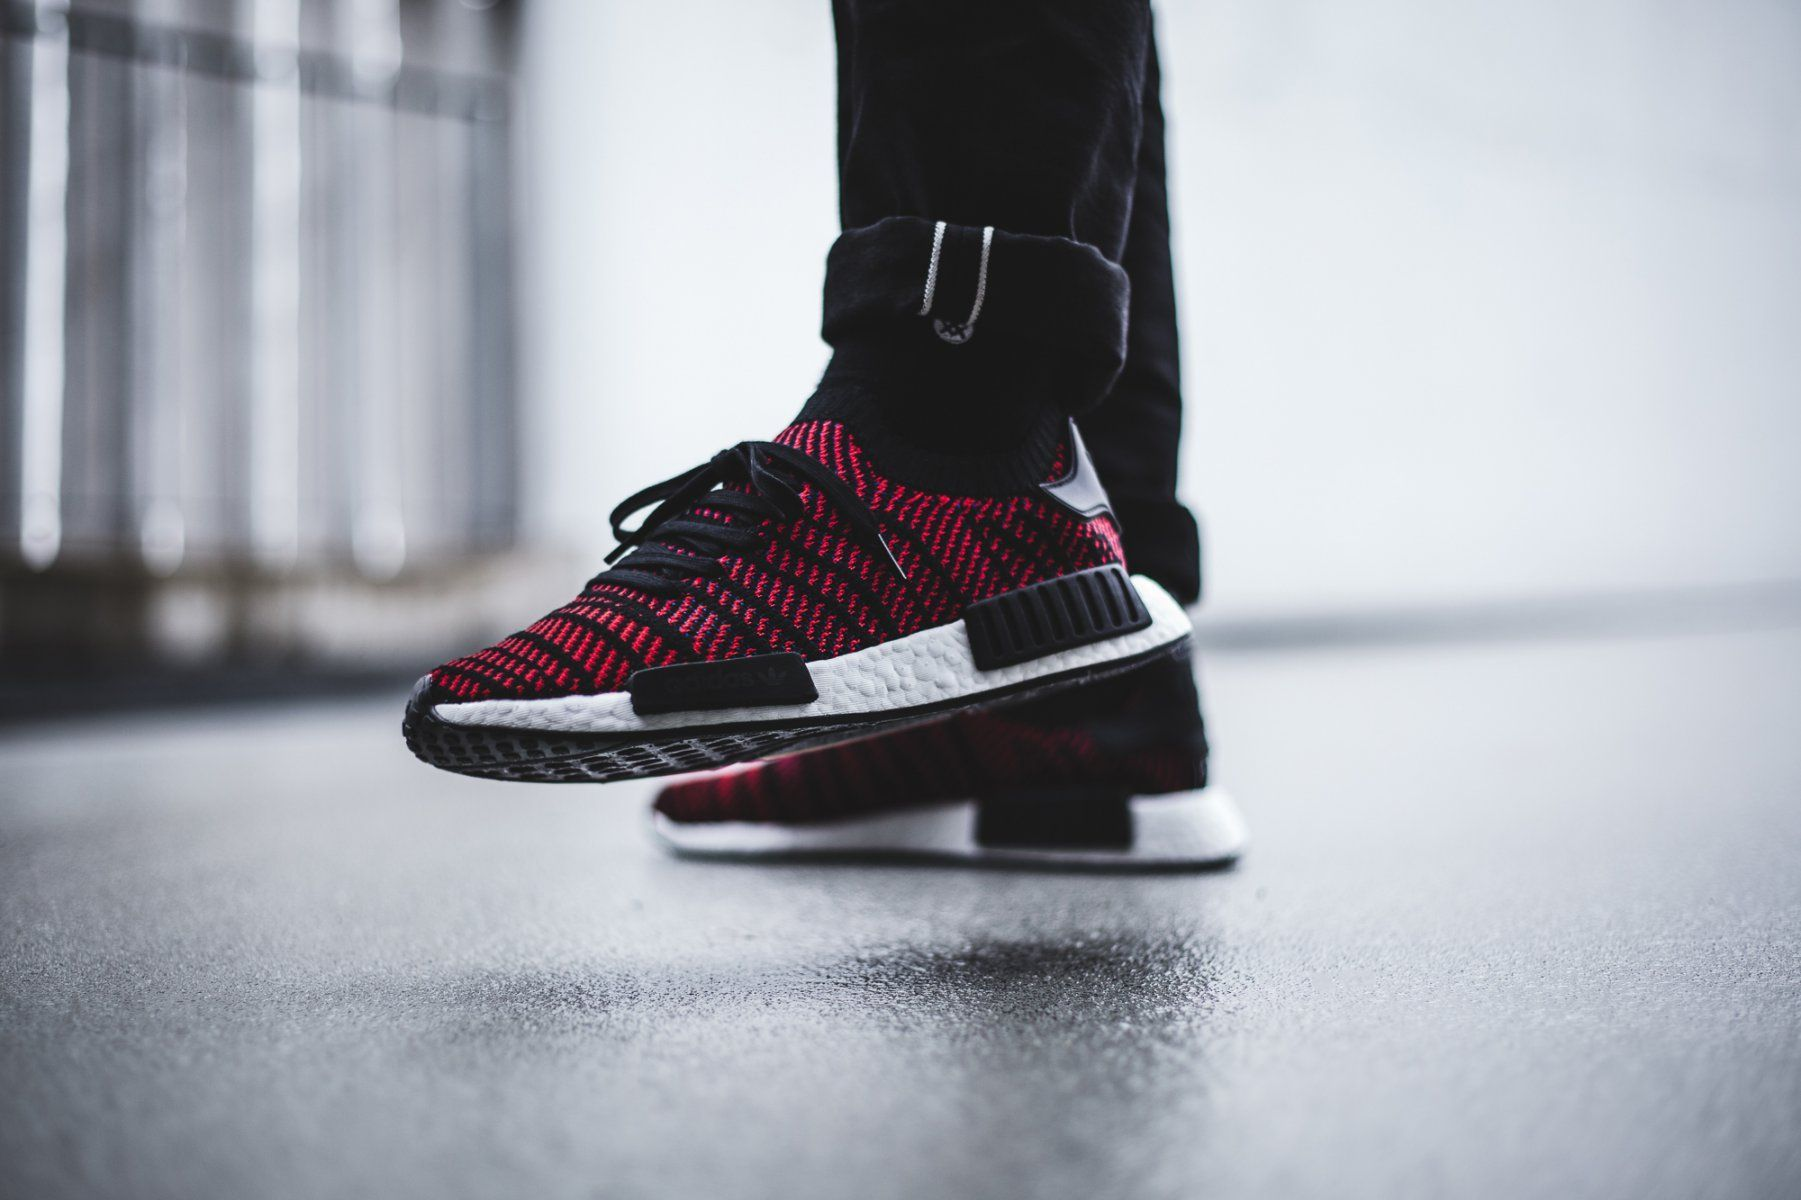 competitive price 24f27 b61df Adidas Nmd R1 Primeknit, Ootd, Latest Shoe Trends, Trainers, Adidas  Originals,